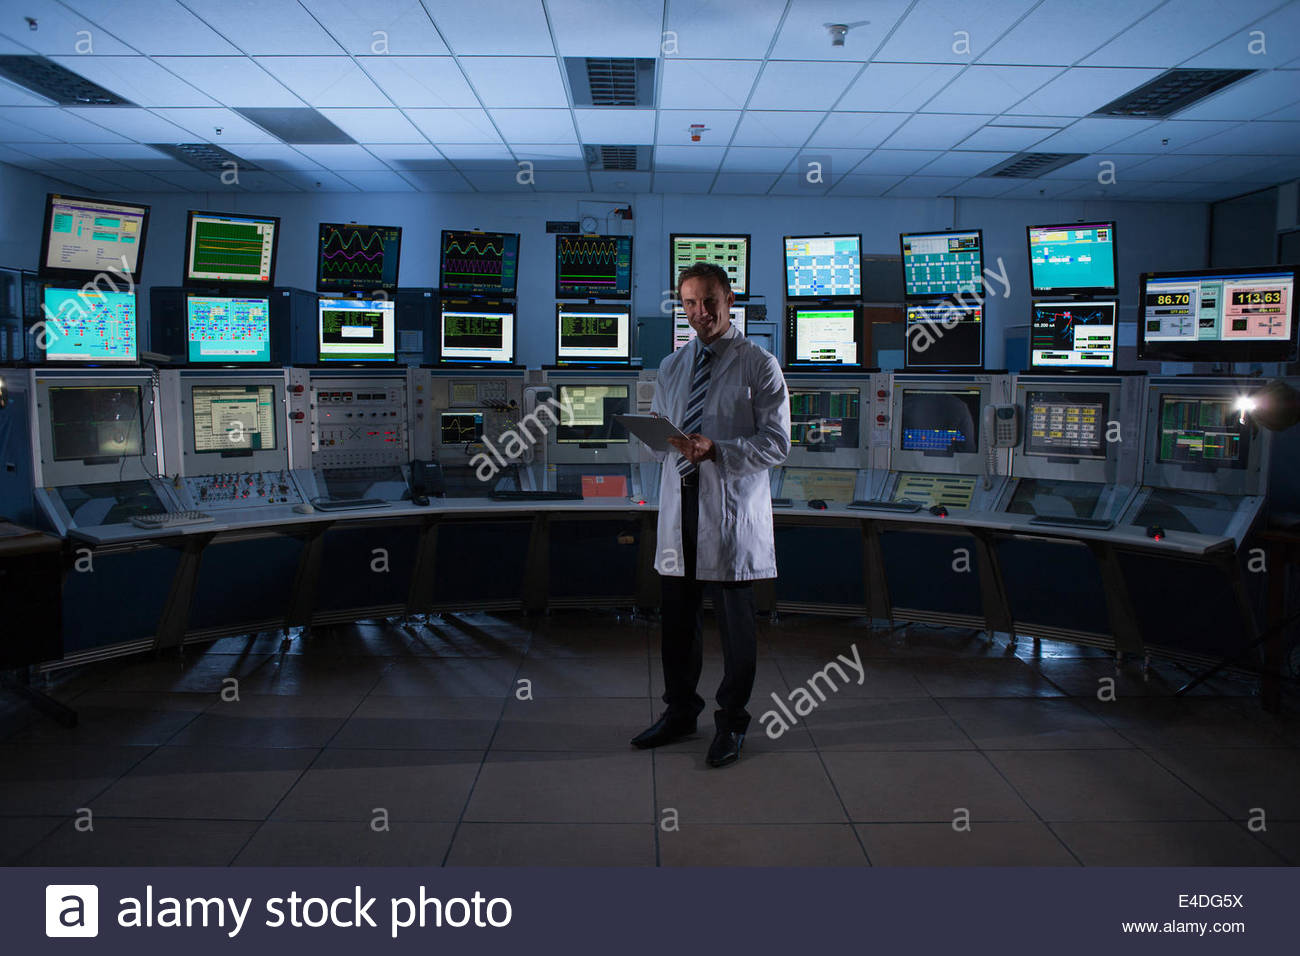 Scientist monitoring computers in control room - Stock Image